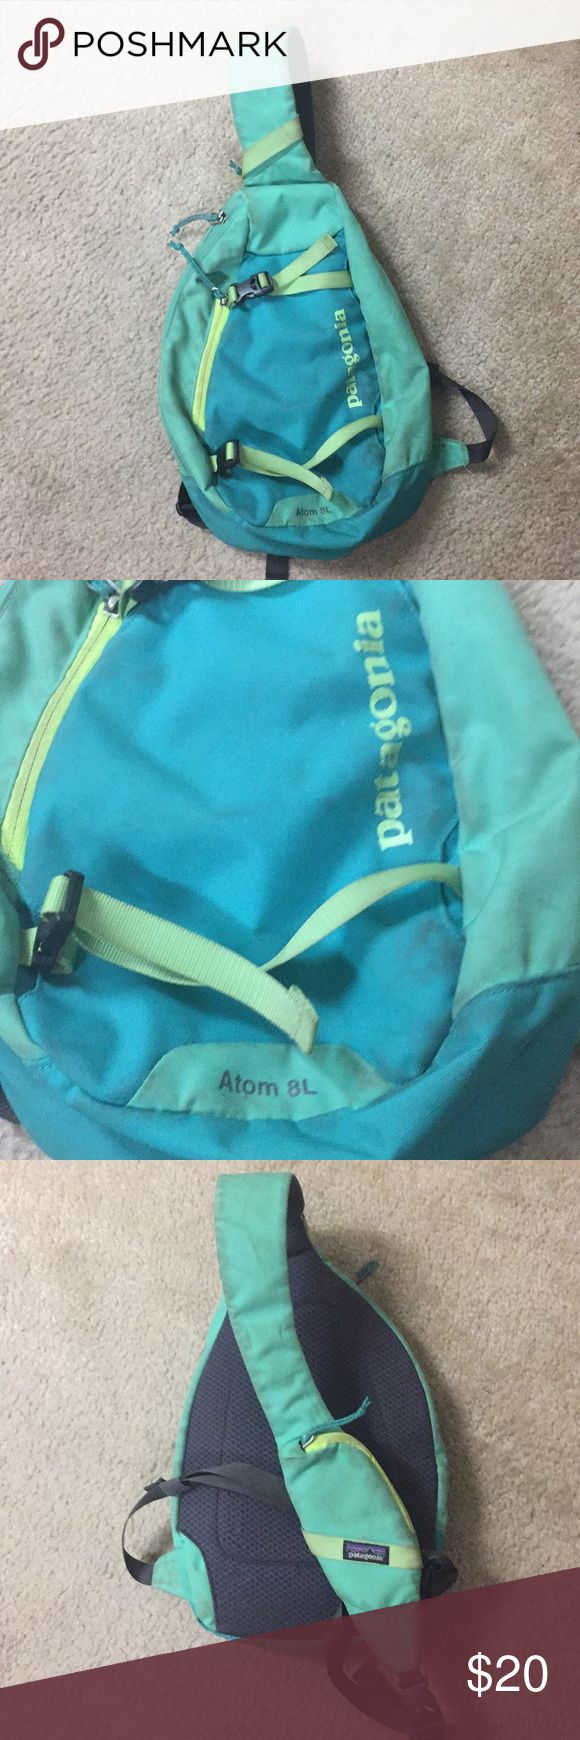 Patagonia Atom 8L Sling Definitely loved this bag as you can see the dirt stains. Still in great working condition. I just never use this anymore. Patagonia Bags Crossbody Bags